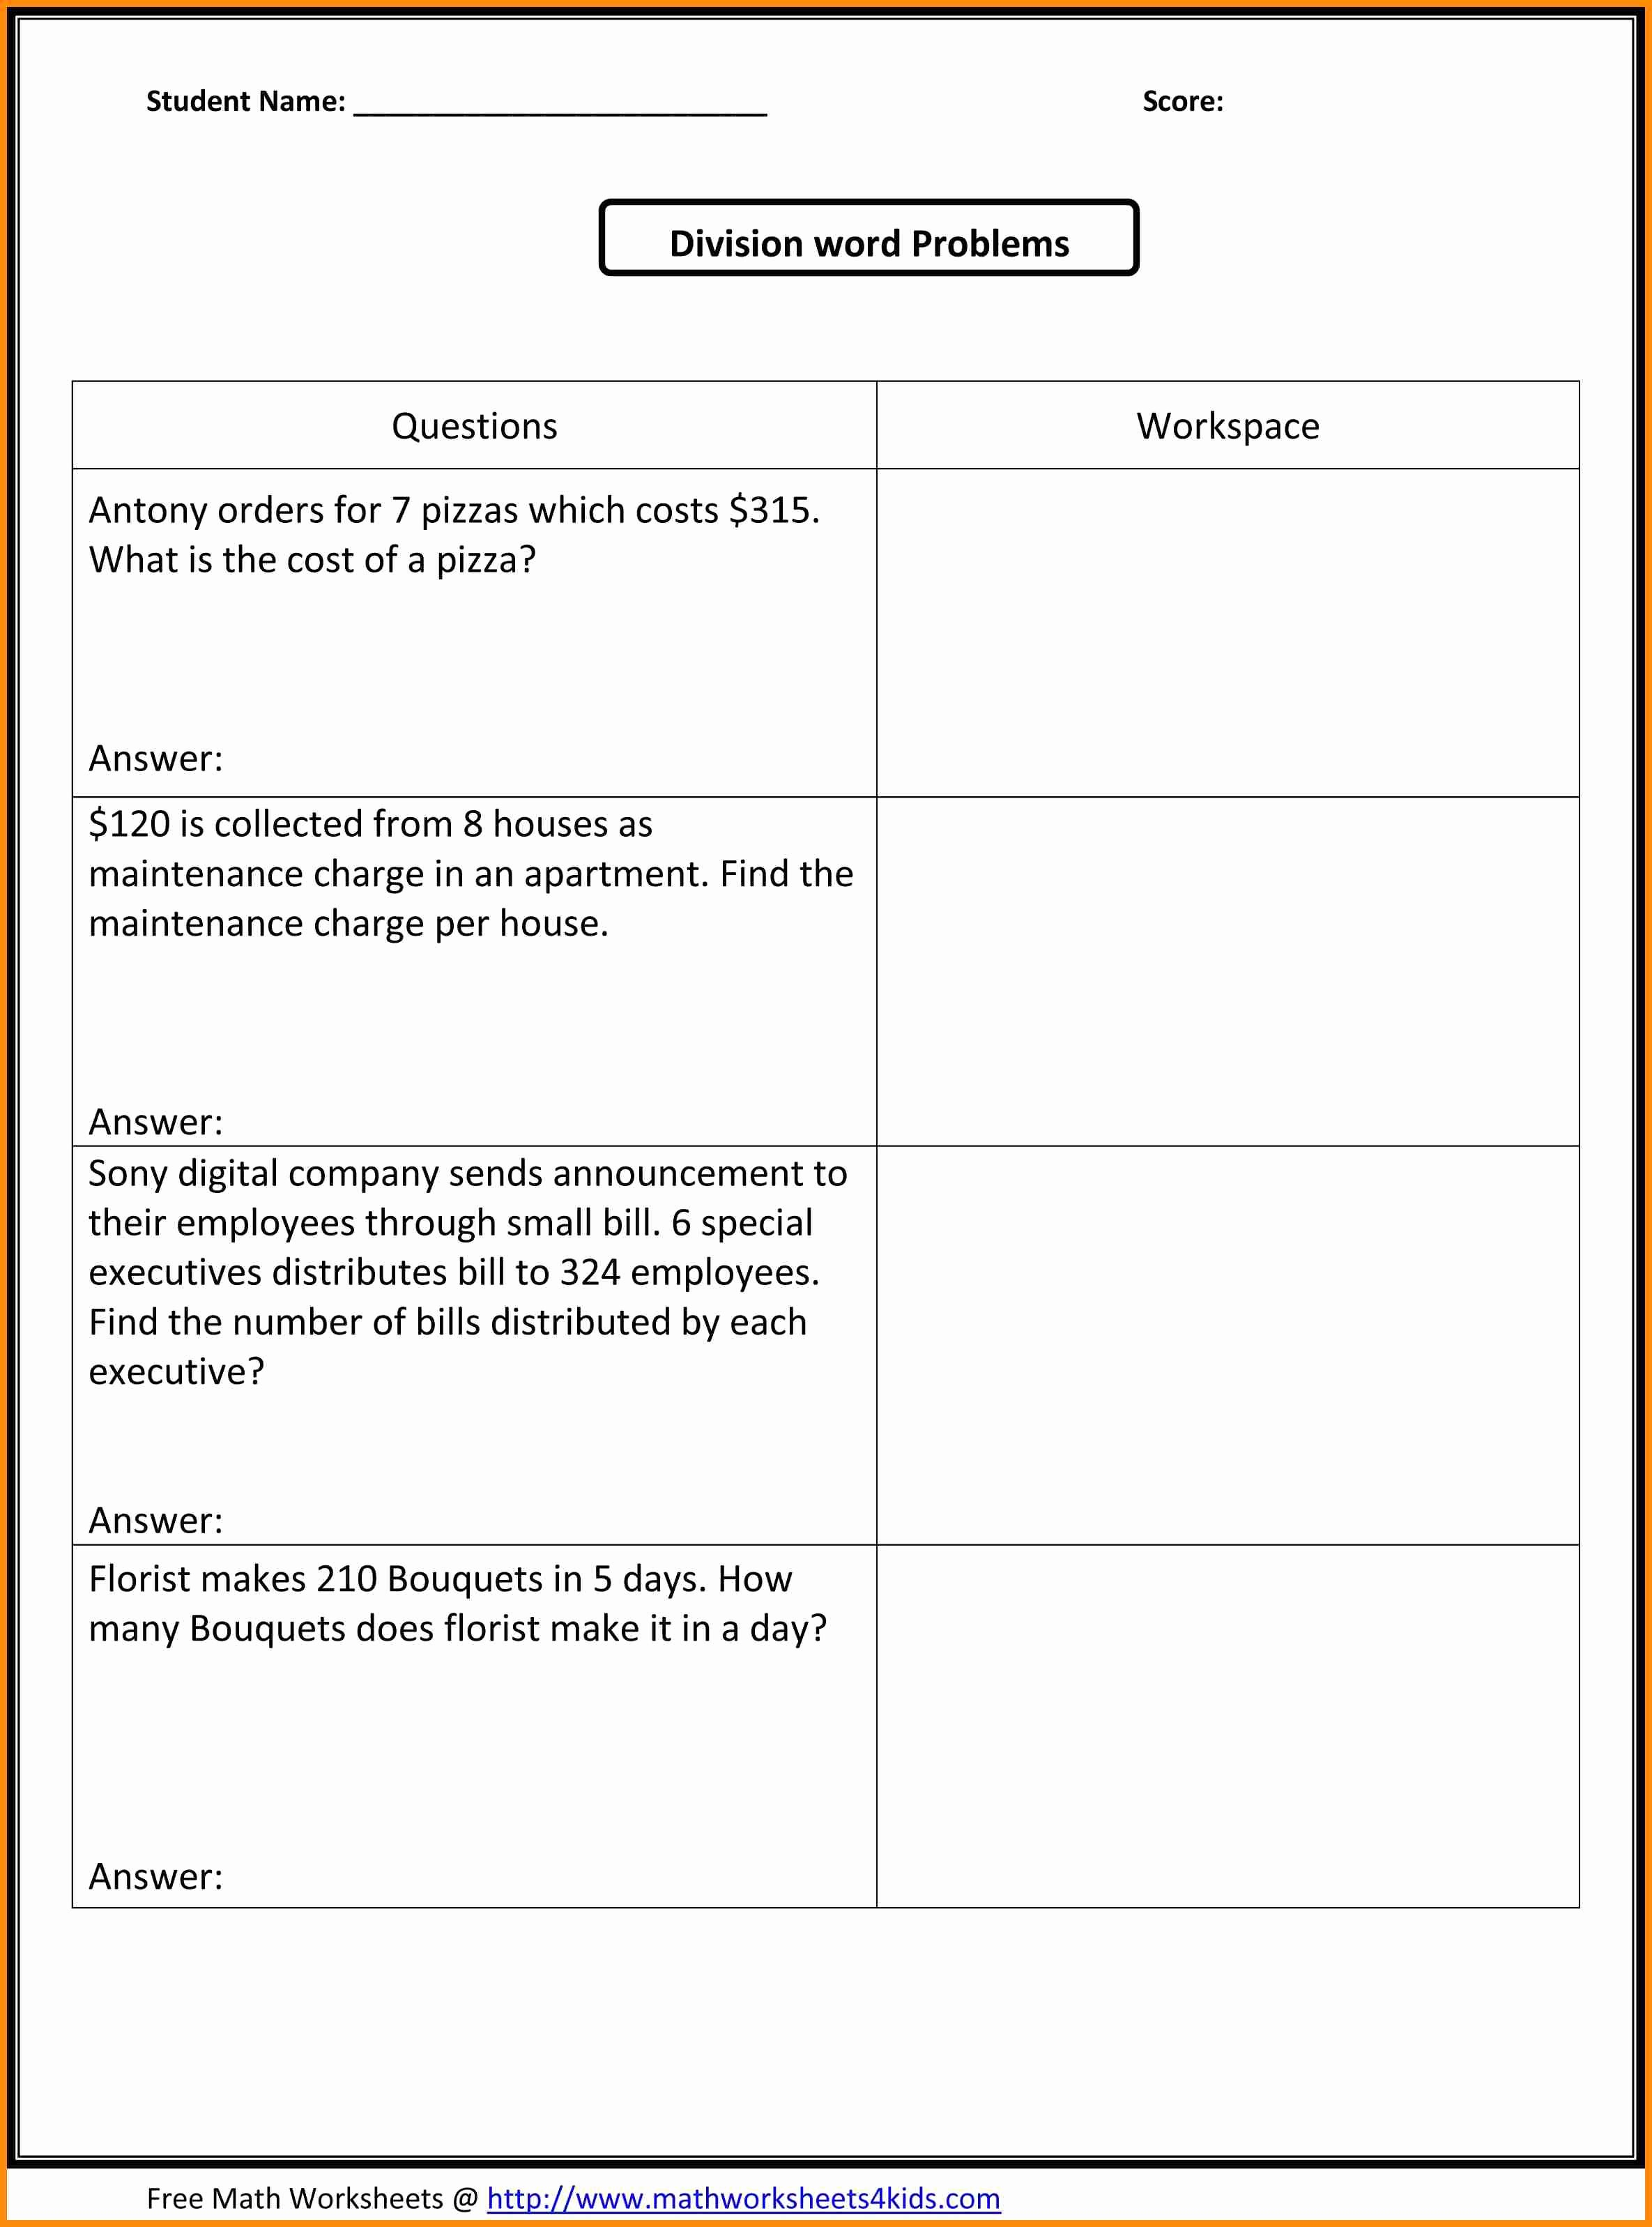 Multiplying Fractions Word Problems Worksheet Luxury Multiplying and Dividing Fractions Word Problems